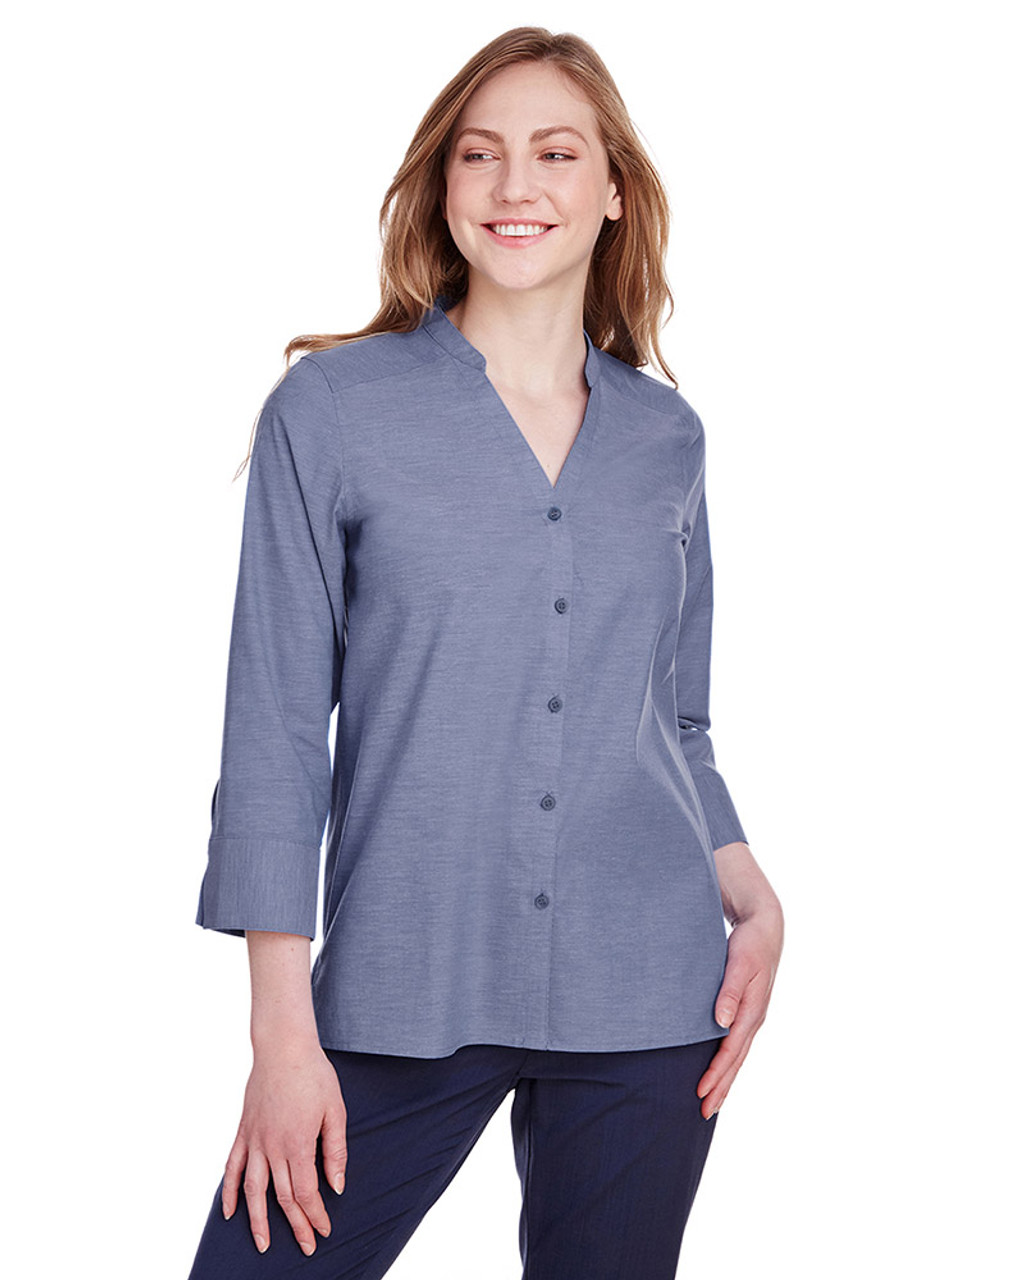 Navy - DG562W Devon & Jones Ladies' Crown Collection™ Stretch Pinpoint Chambray 3/4 Sleeve Blouse | Blankclothing.ca